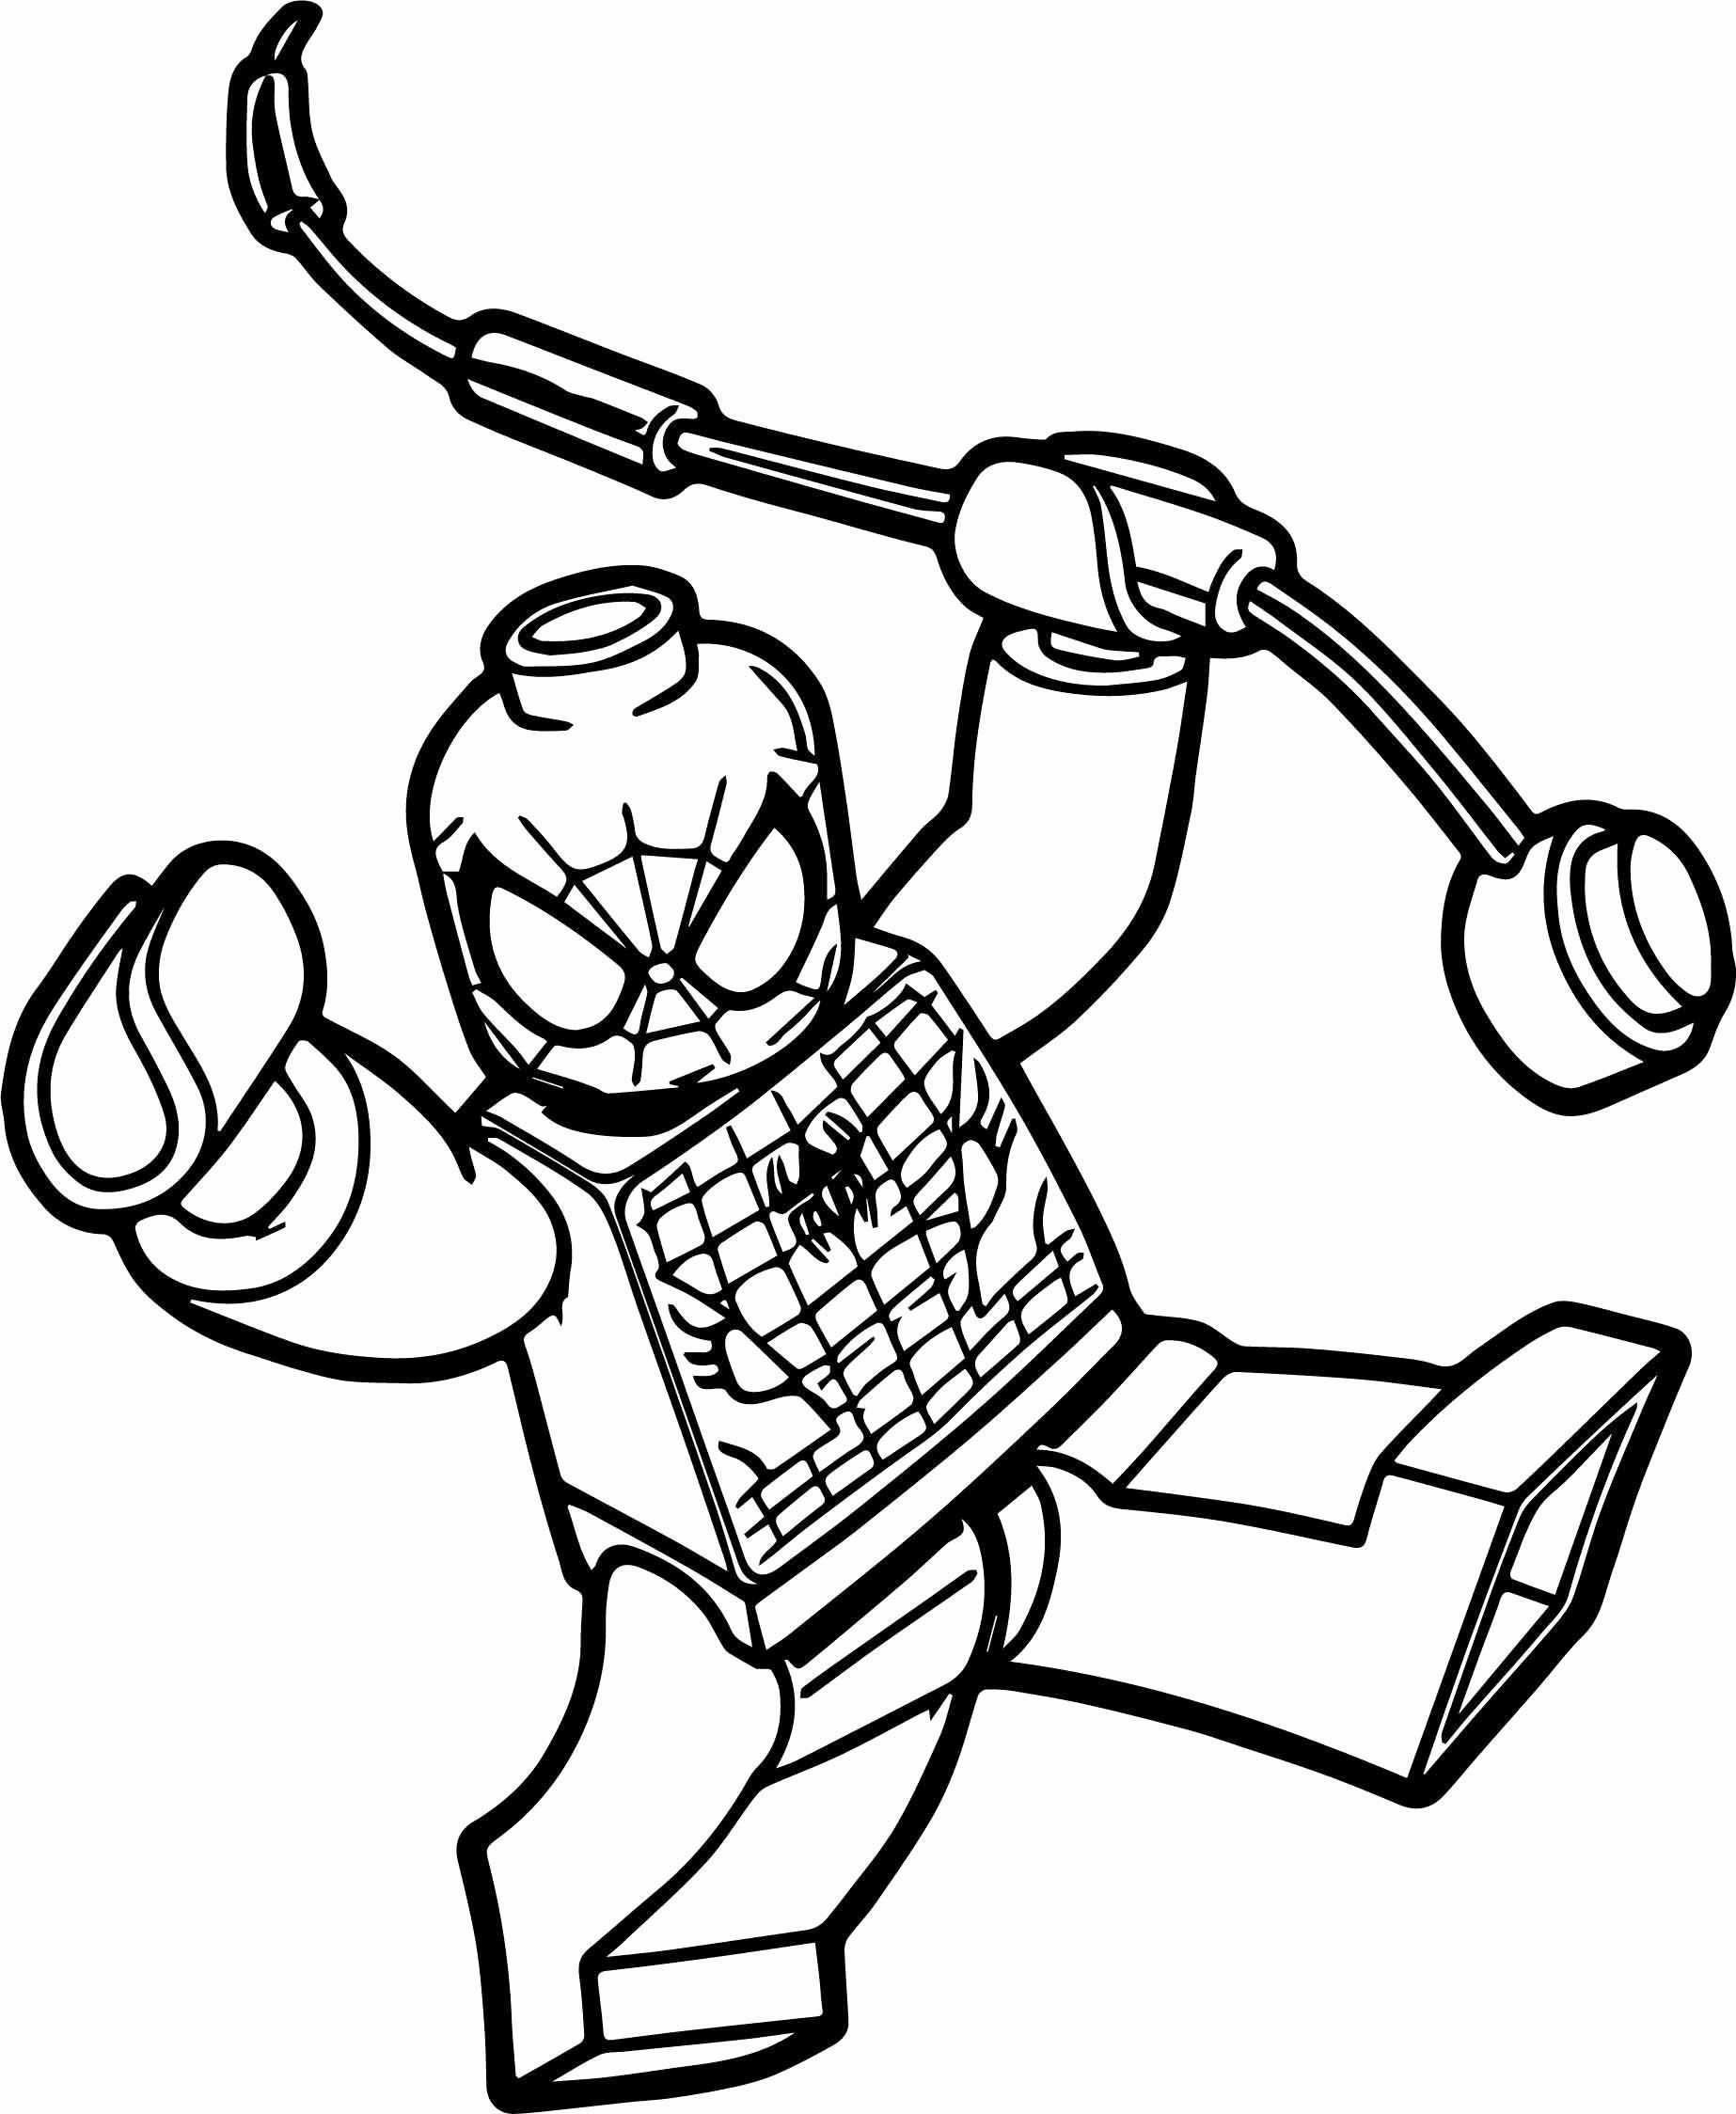 Sports Coloring Book Pdf Best Of Spiderman Coloring Pages Spiderman Coloring Lego Coloring Pages Flag Coloring Pages